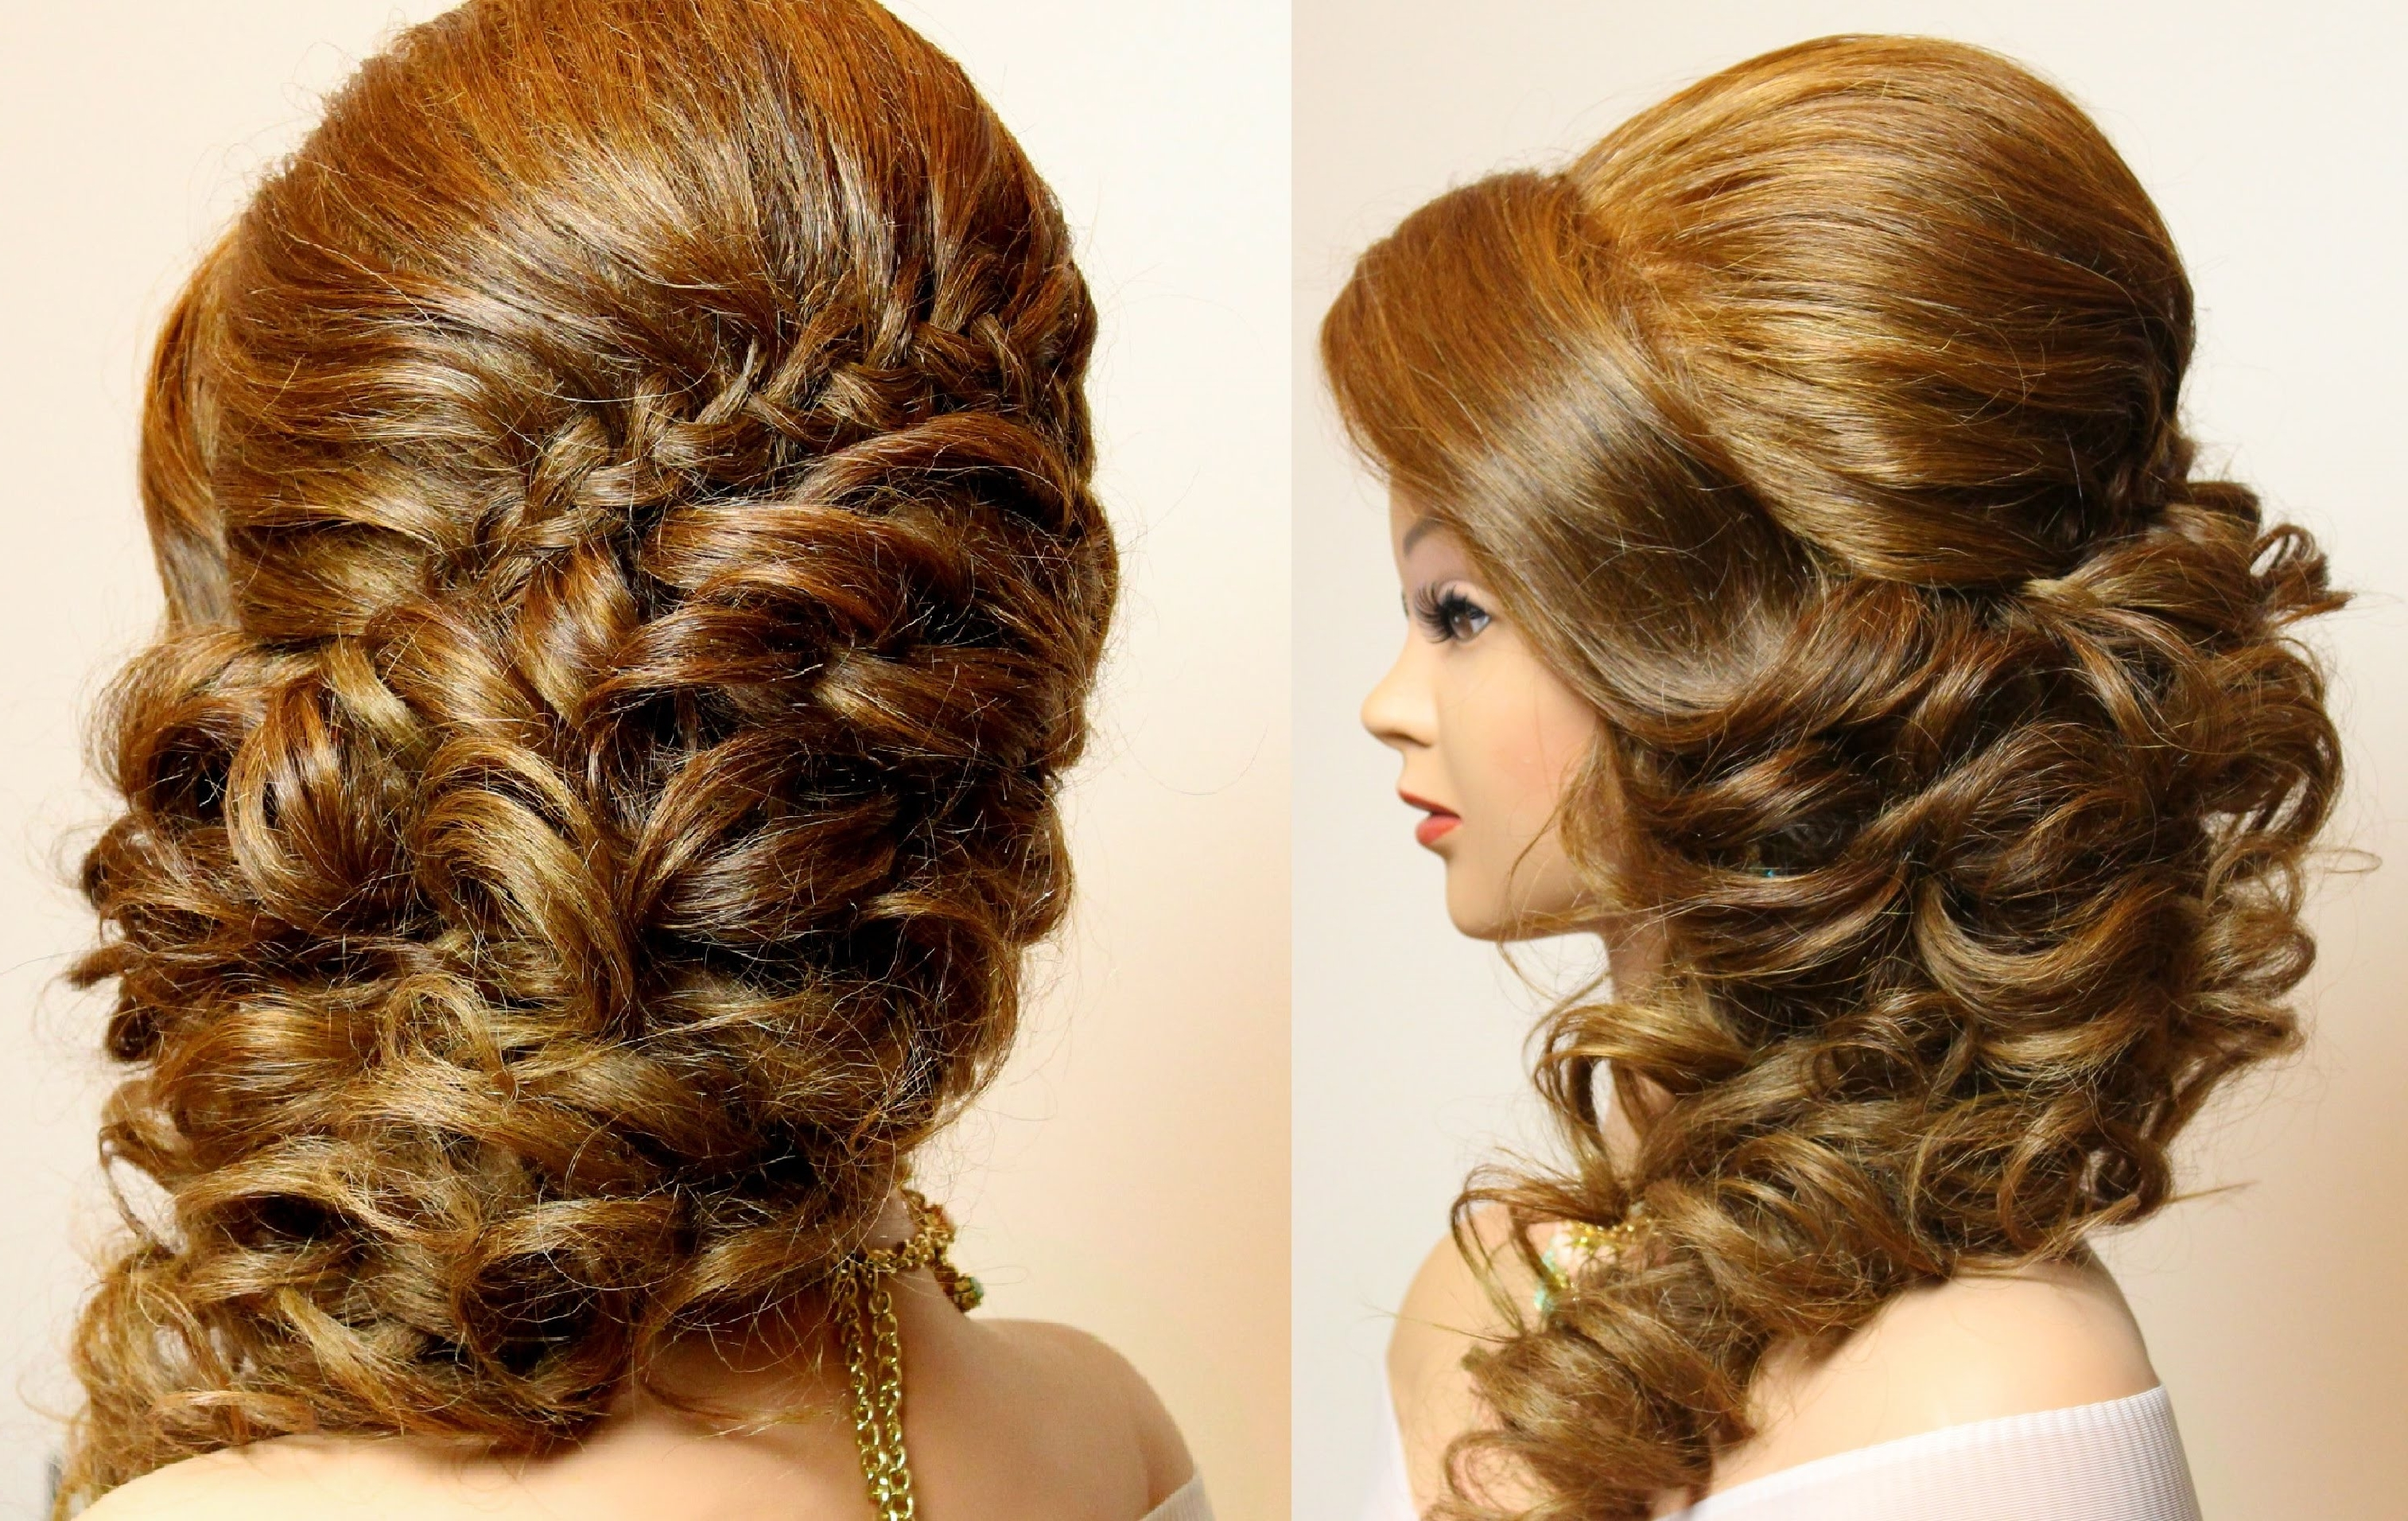 Well Liked Plaits Bun Wedding Hairstyles Pertaining To Bridal Hairstyle With Braid And Curls (View 15 of 15)